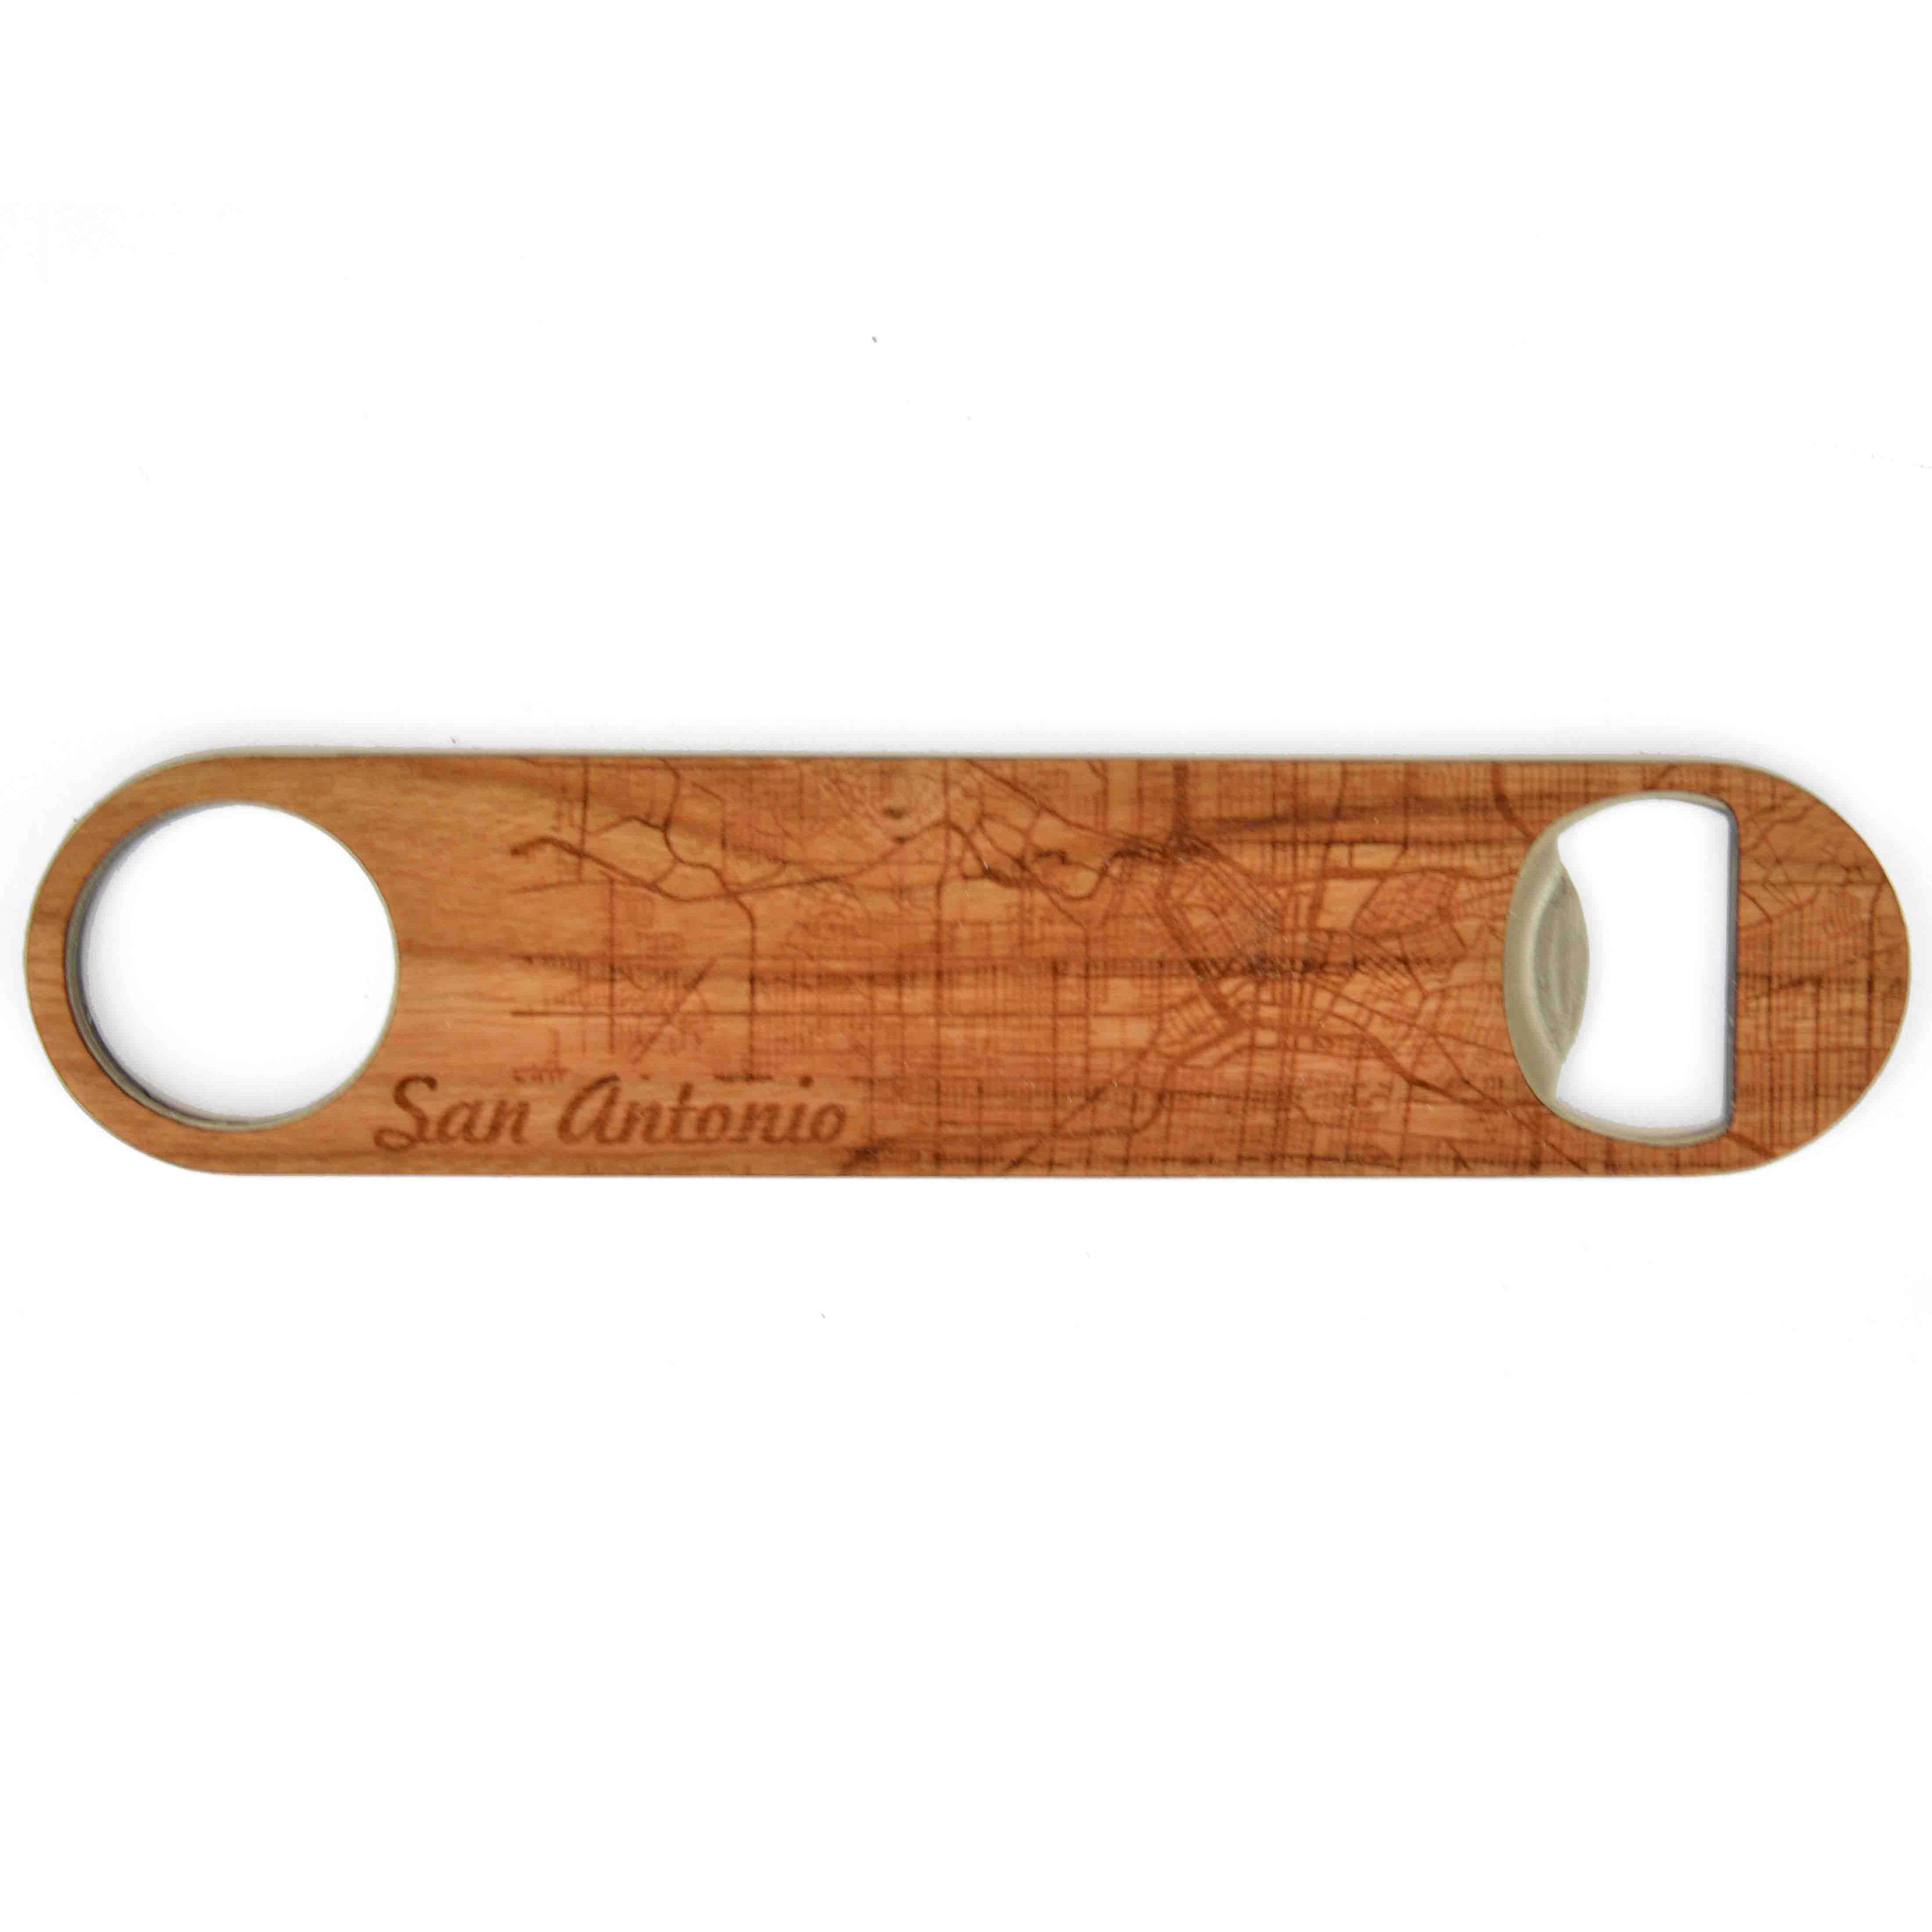 City Map Bottle Opener - Autumn Woods Co.